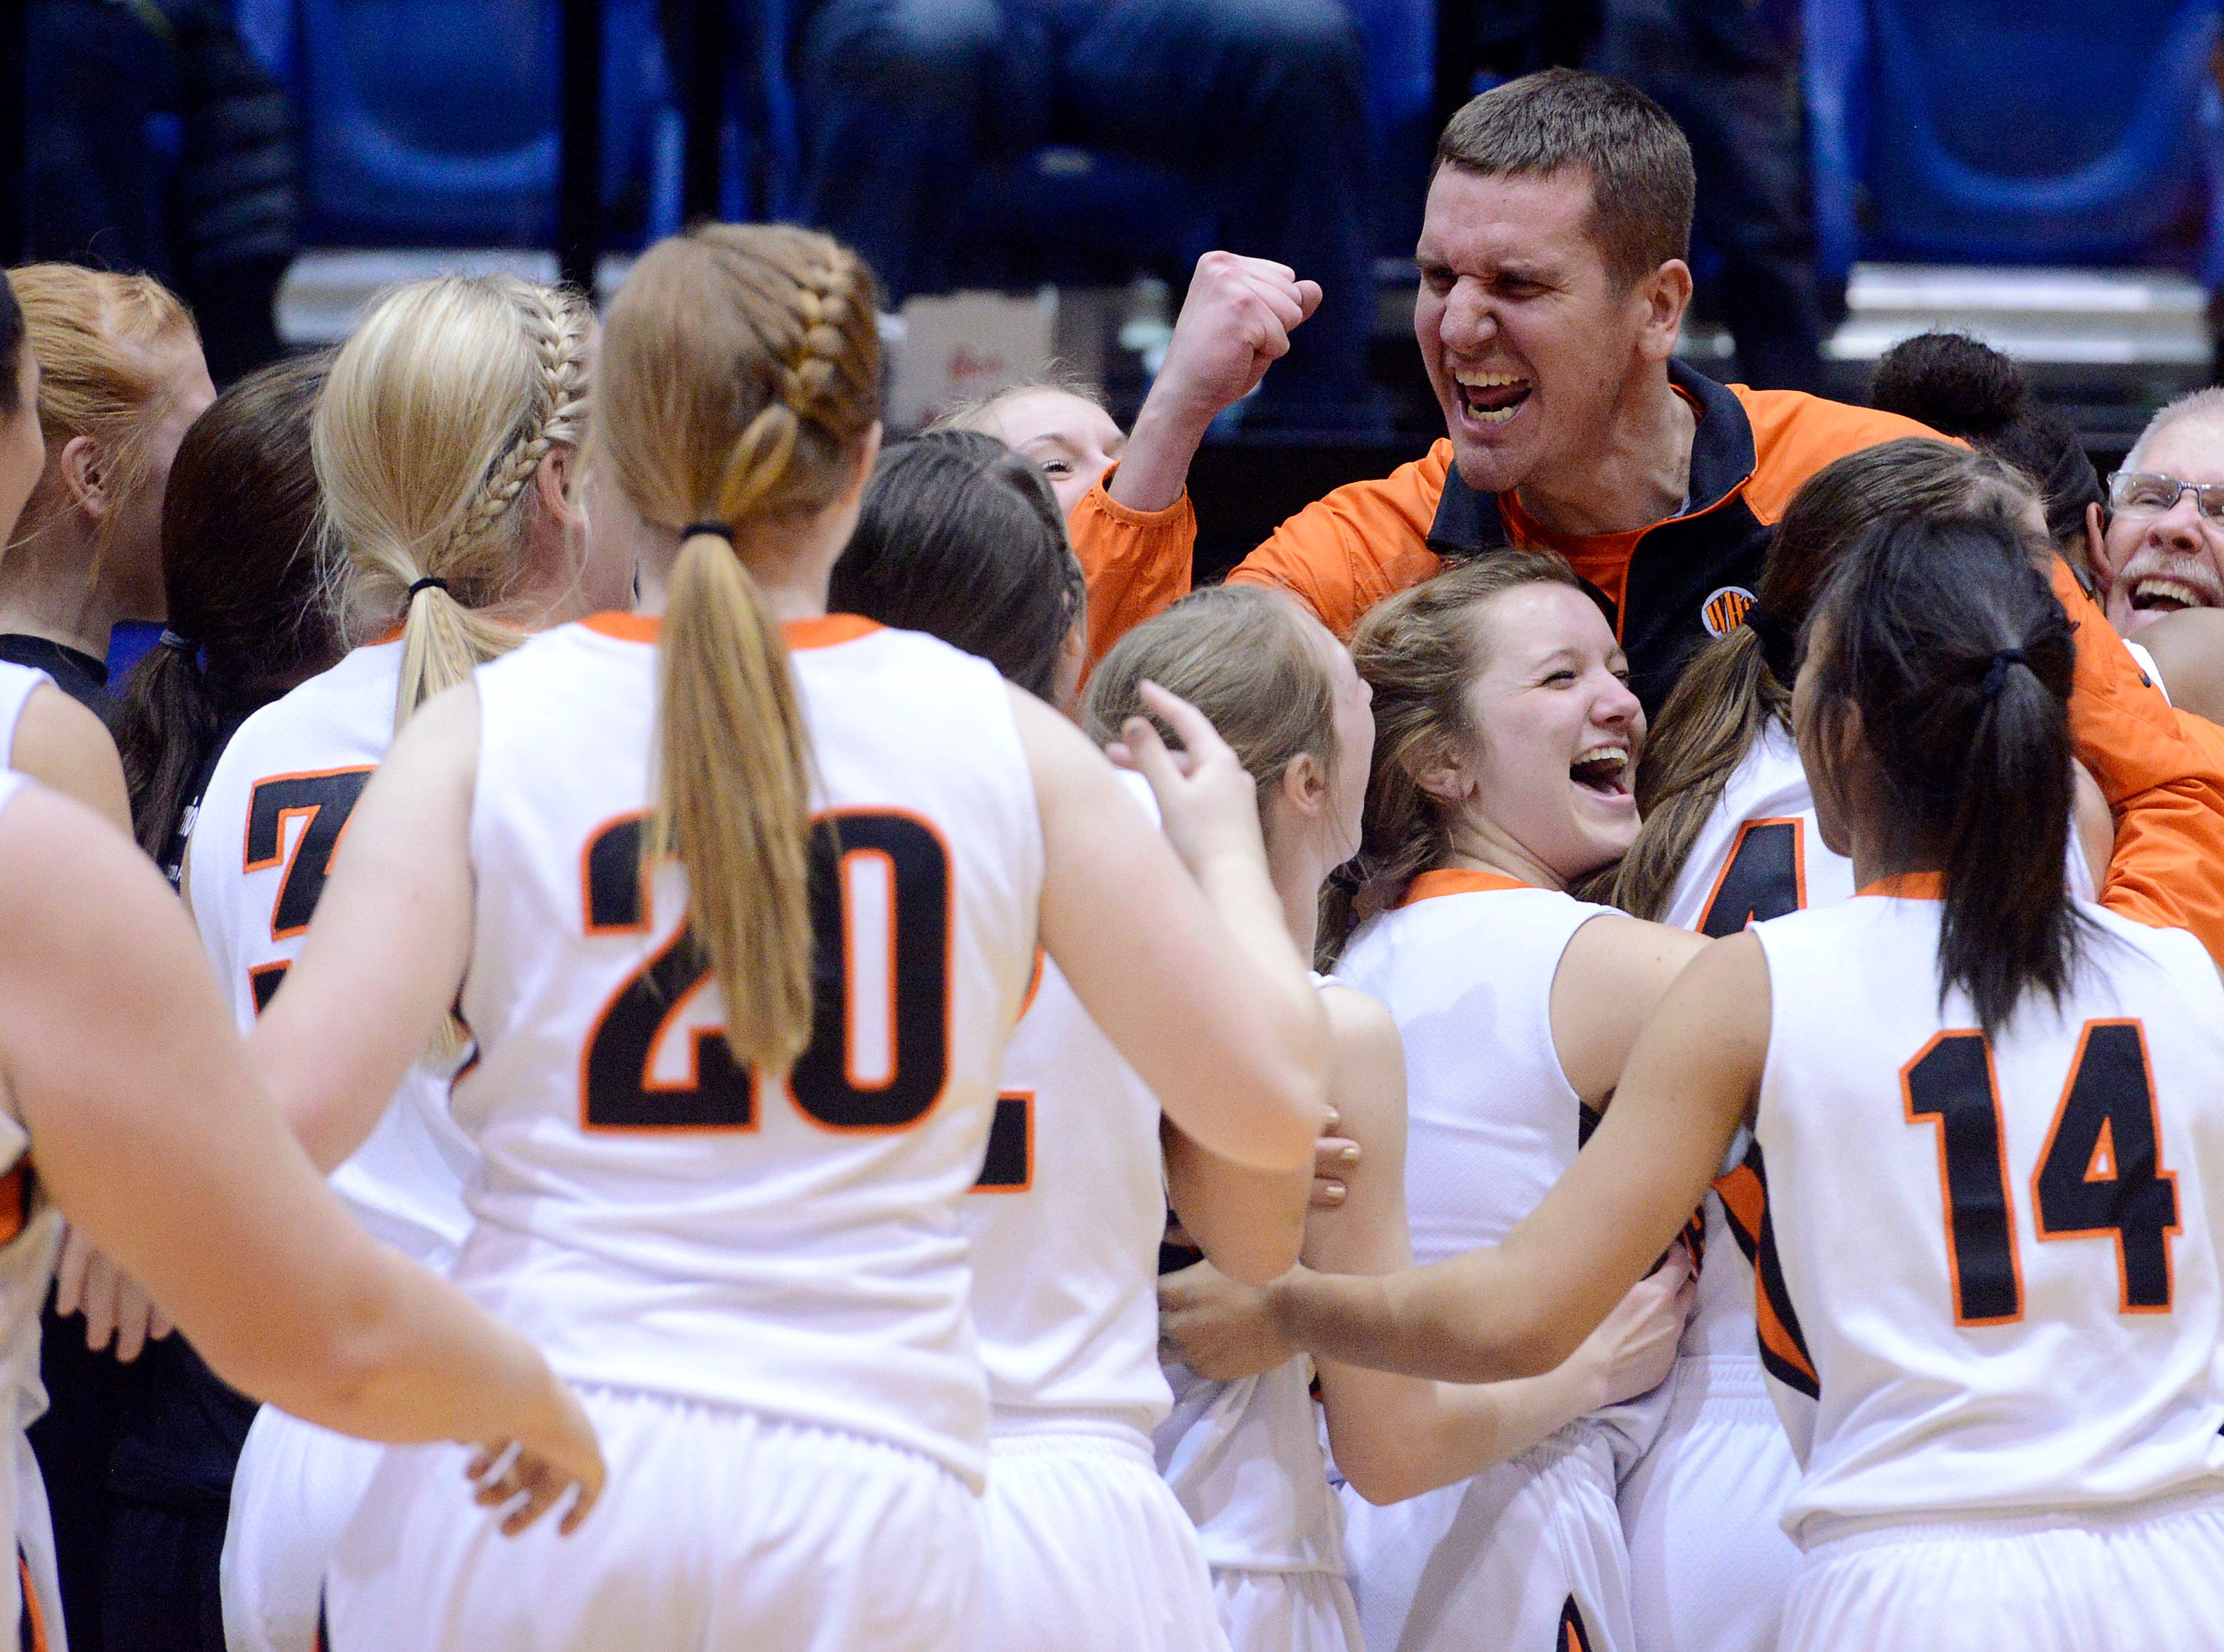 Washington head coach, Nate Malchow celebrates his team's 58-51 win over Mitchell Saturday at the Class AA girls high school basketball championship at Frost Arena in Brookings, March 15, 2014. (Elisha Page / Argus Leader)